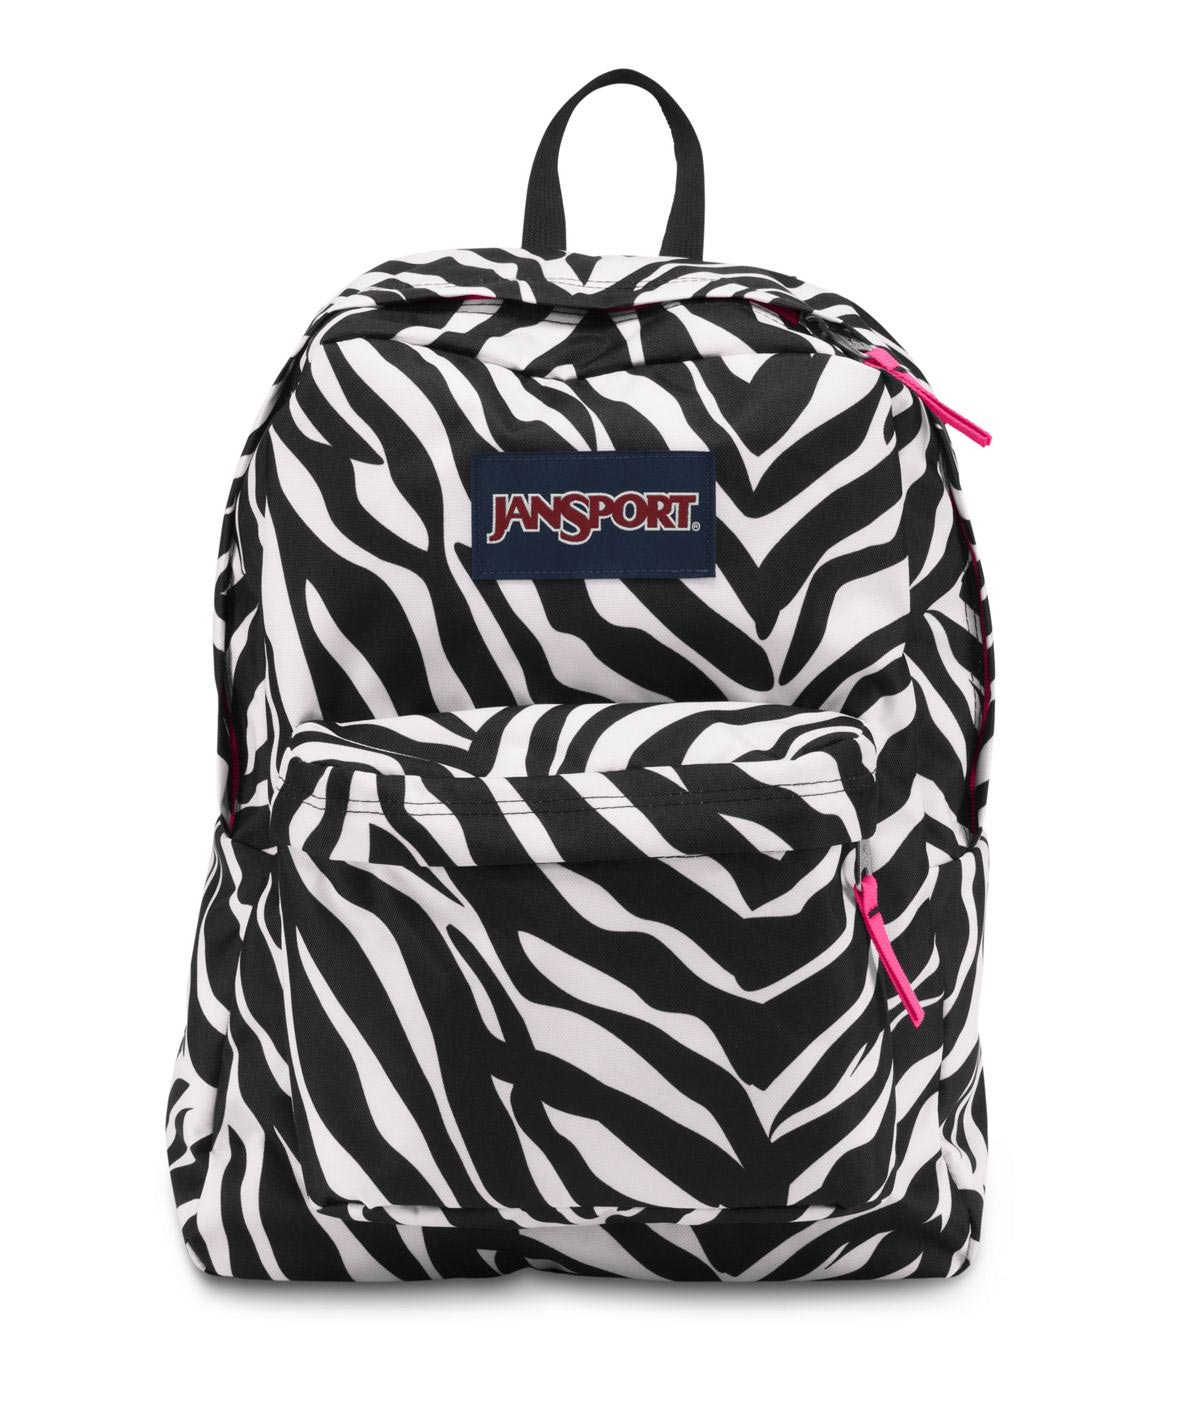 Backpacks For Girls Cheap Zb4Q4ntg